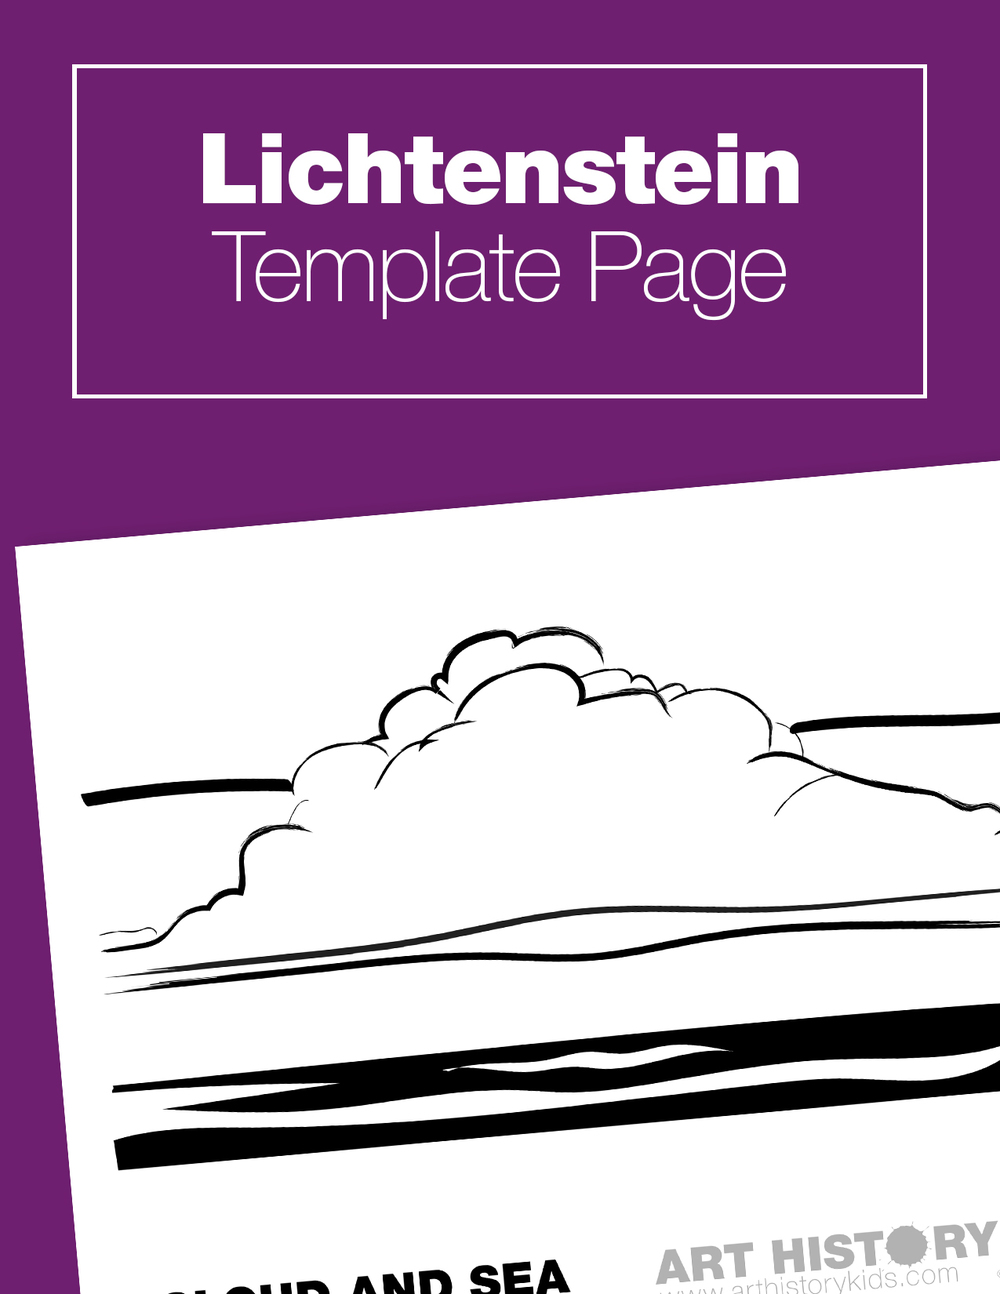 Art History for kids! Learn about Lichtenstein with this fun and interactive pop art project.